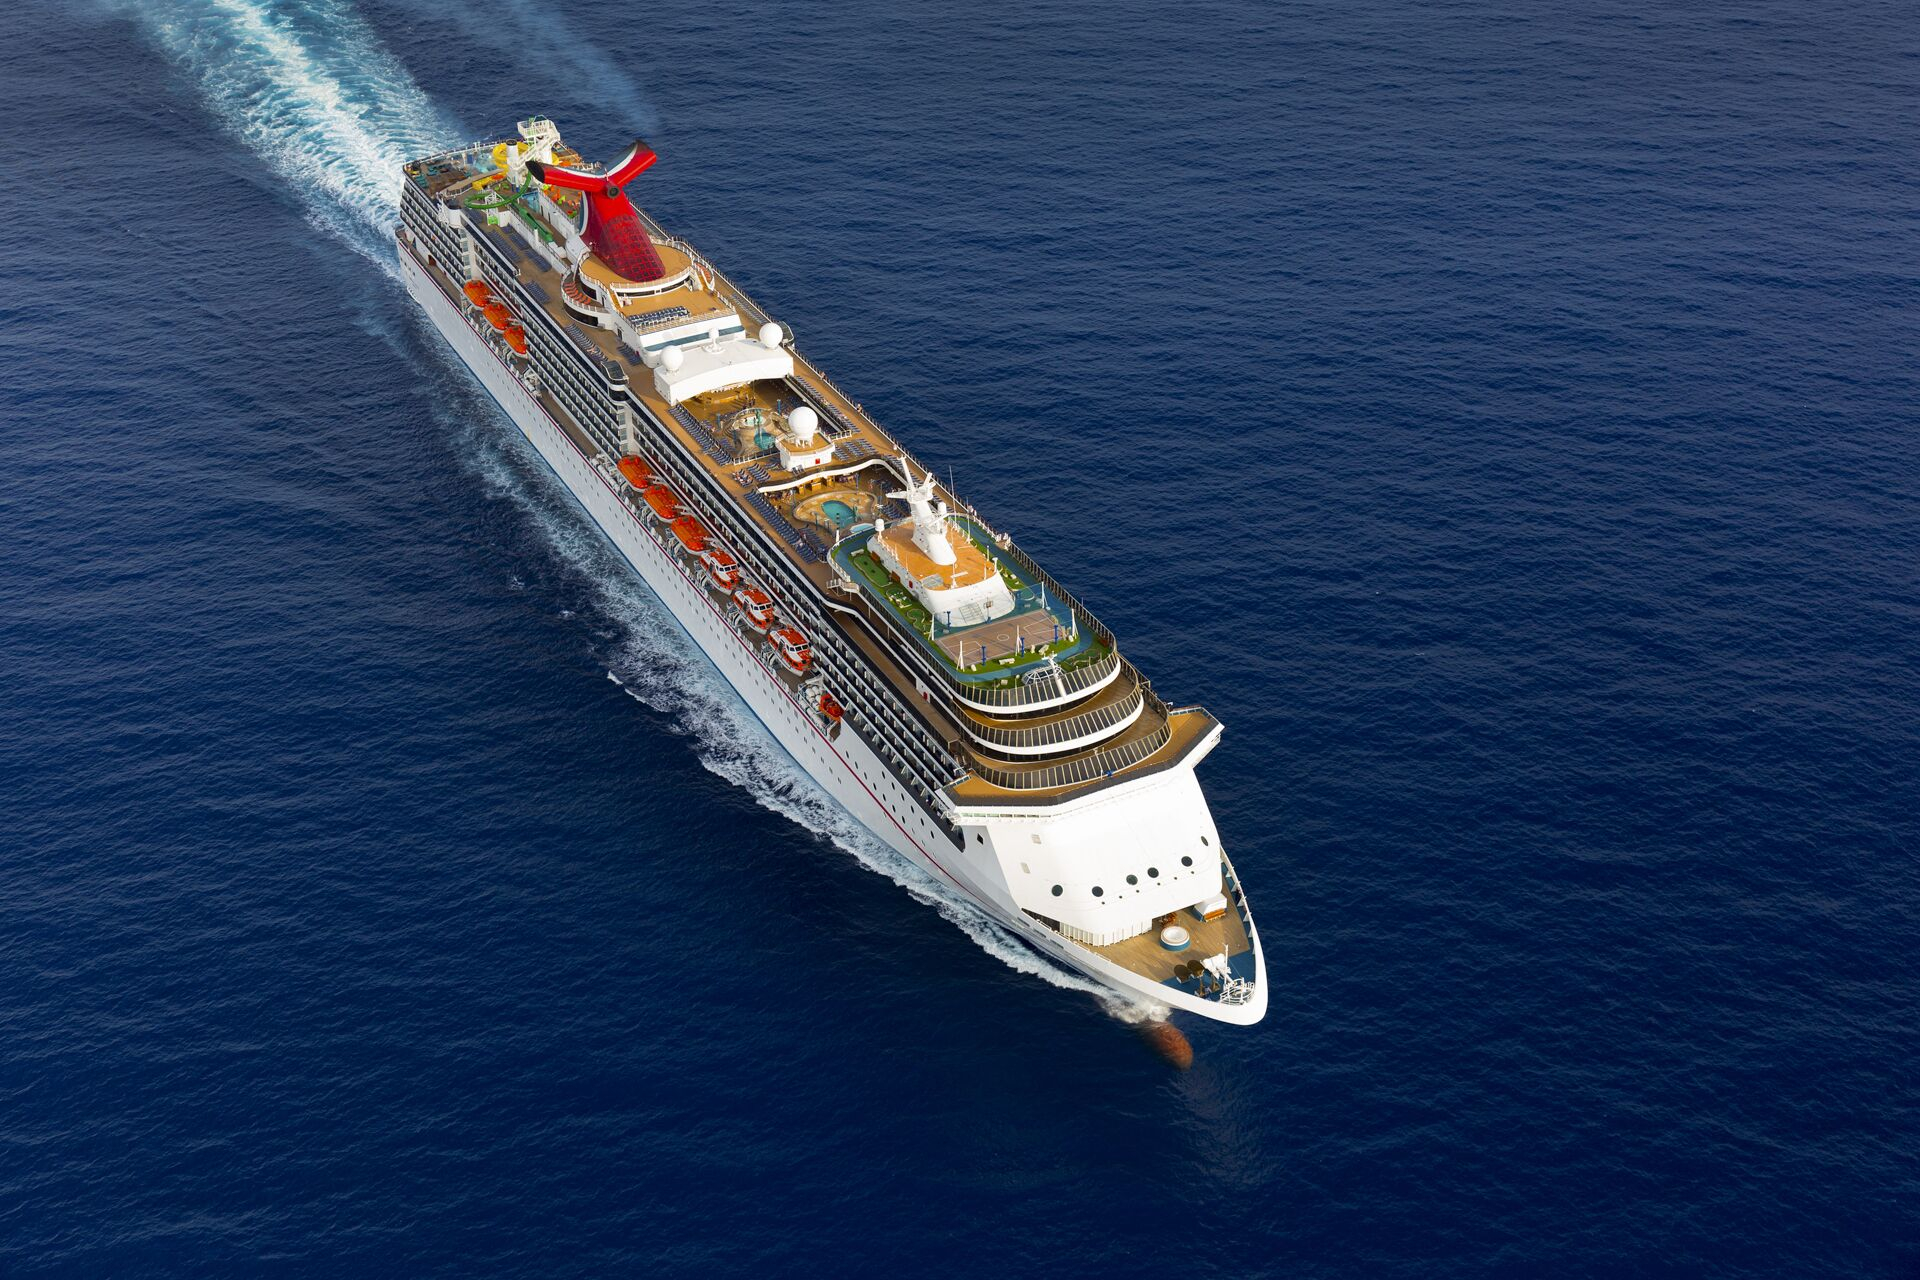 The Carnival Legend. Source: Carnival Cruise Line